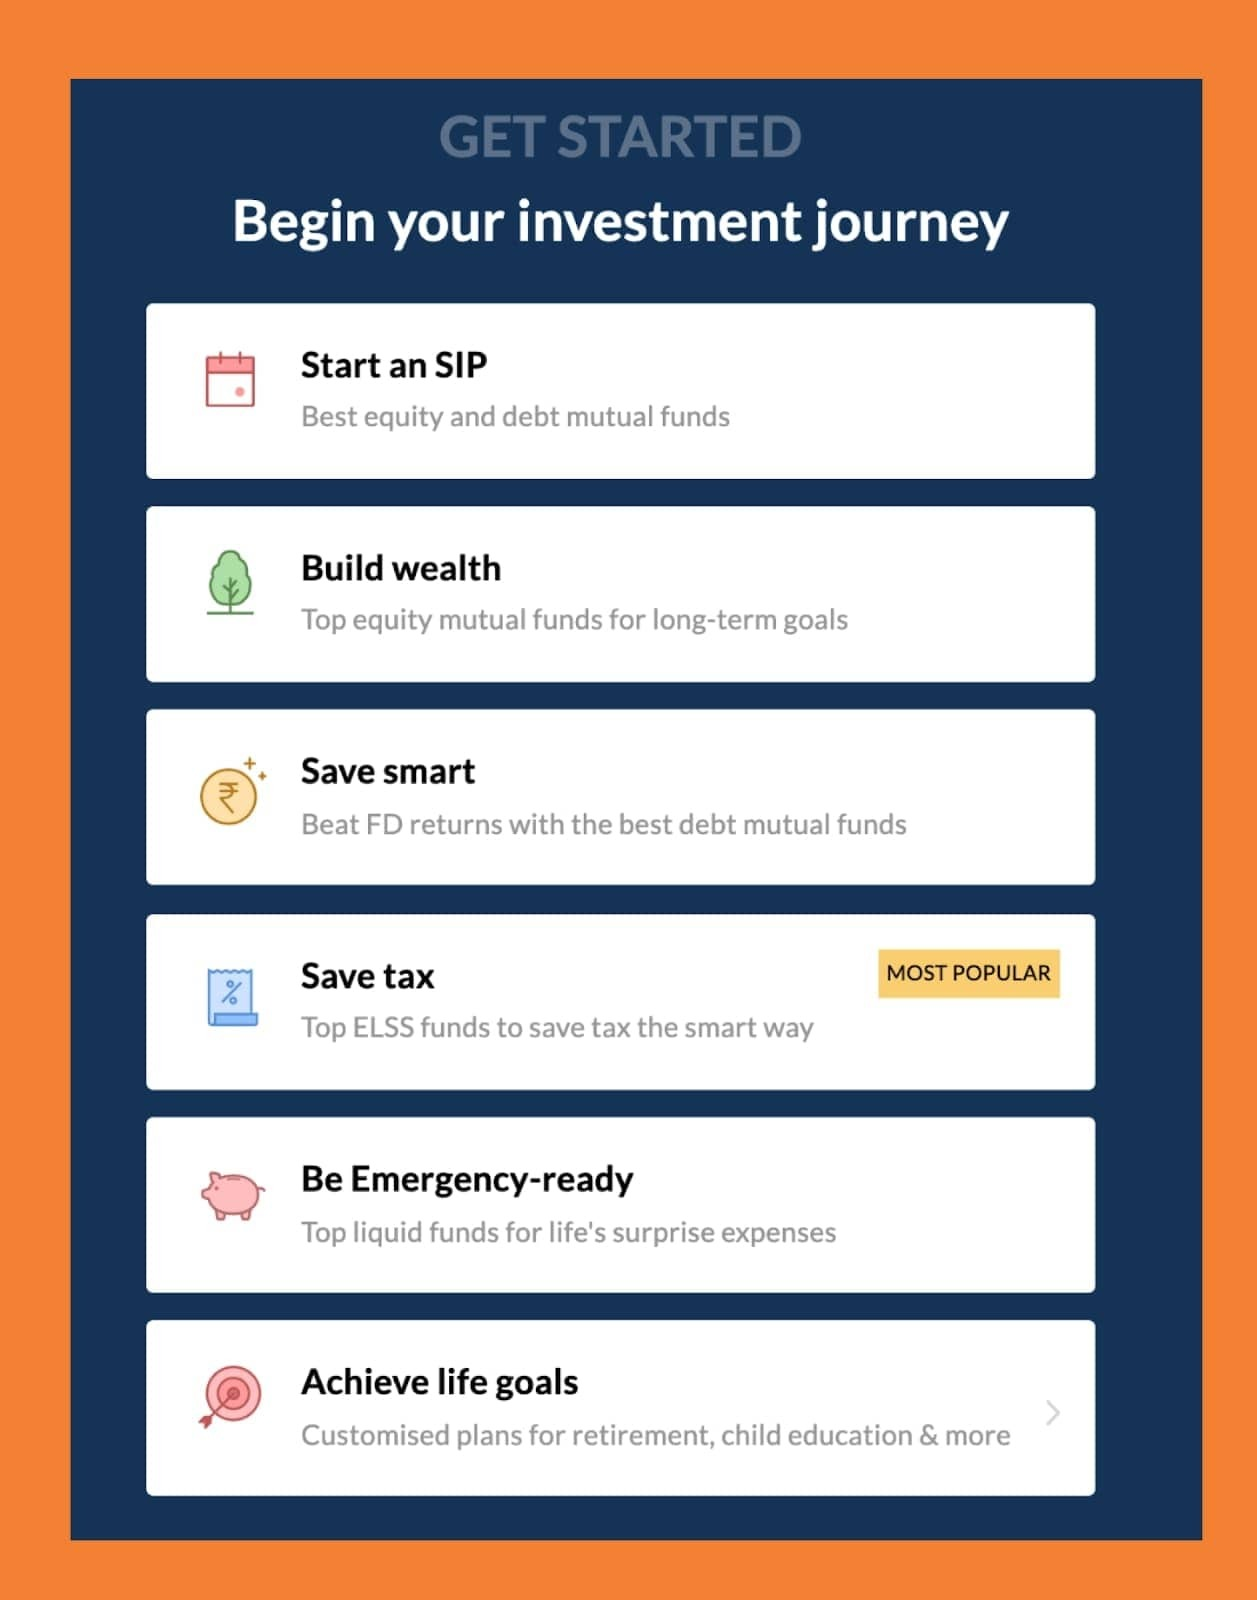 begin-your-investment-journey